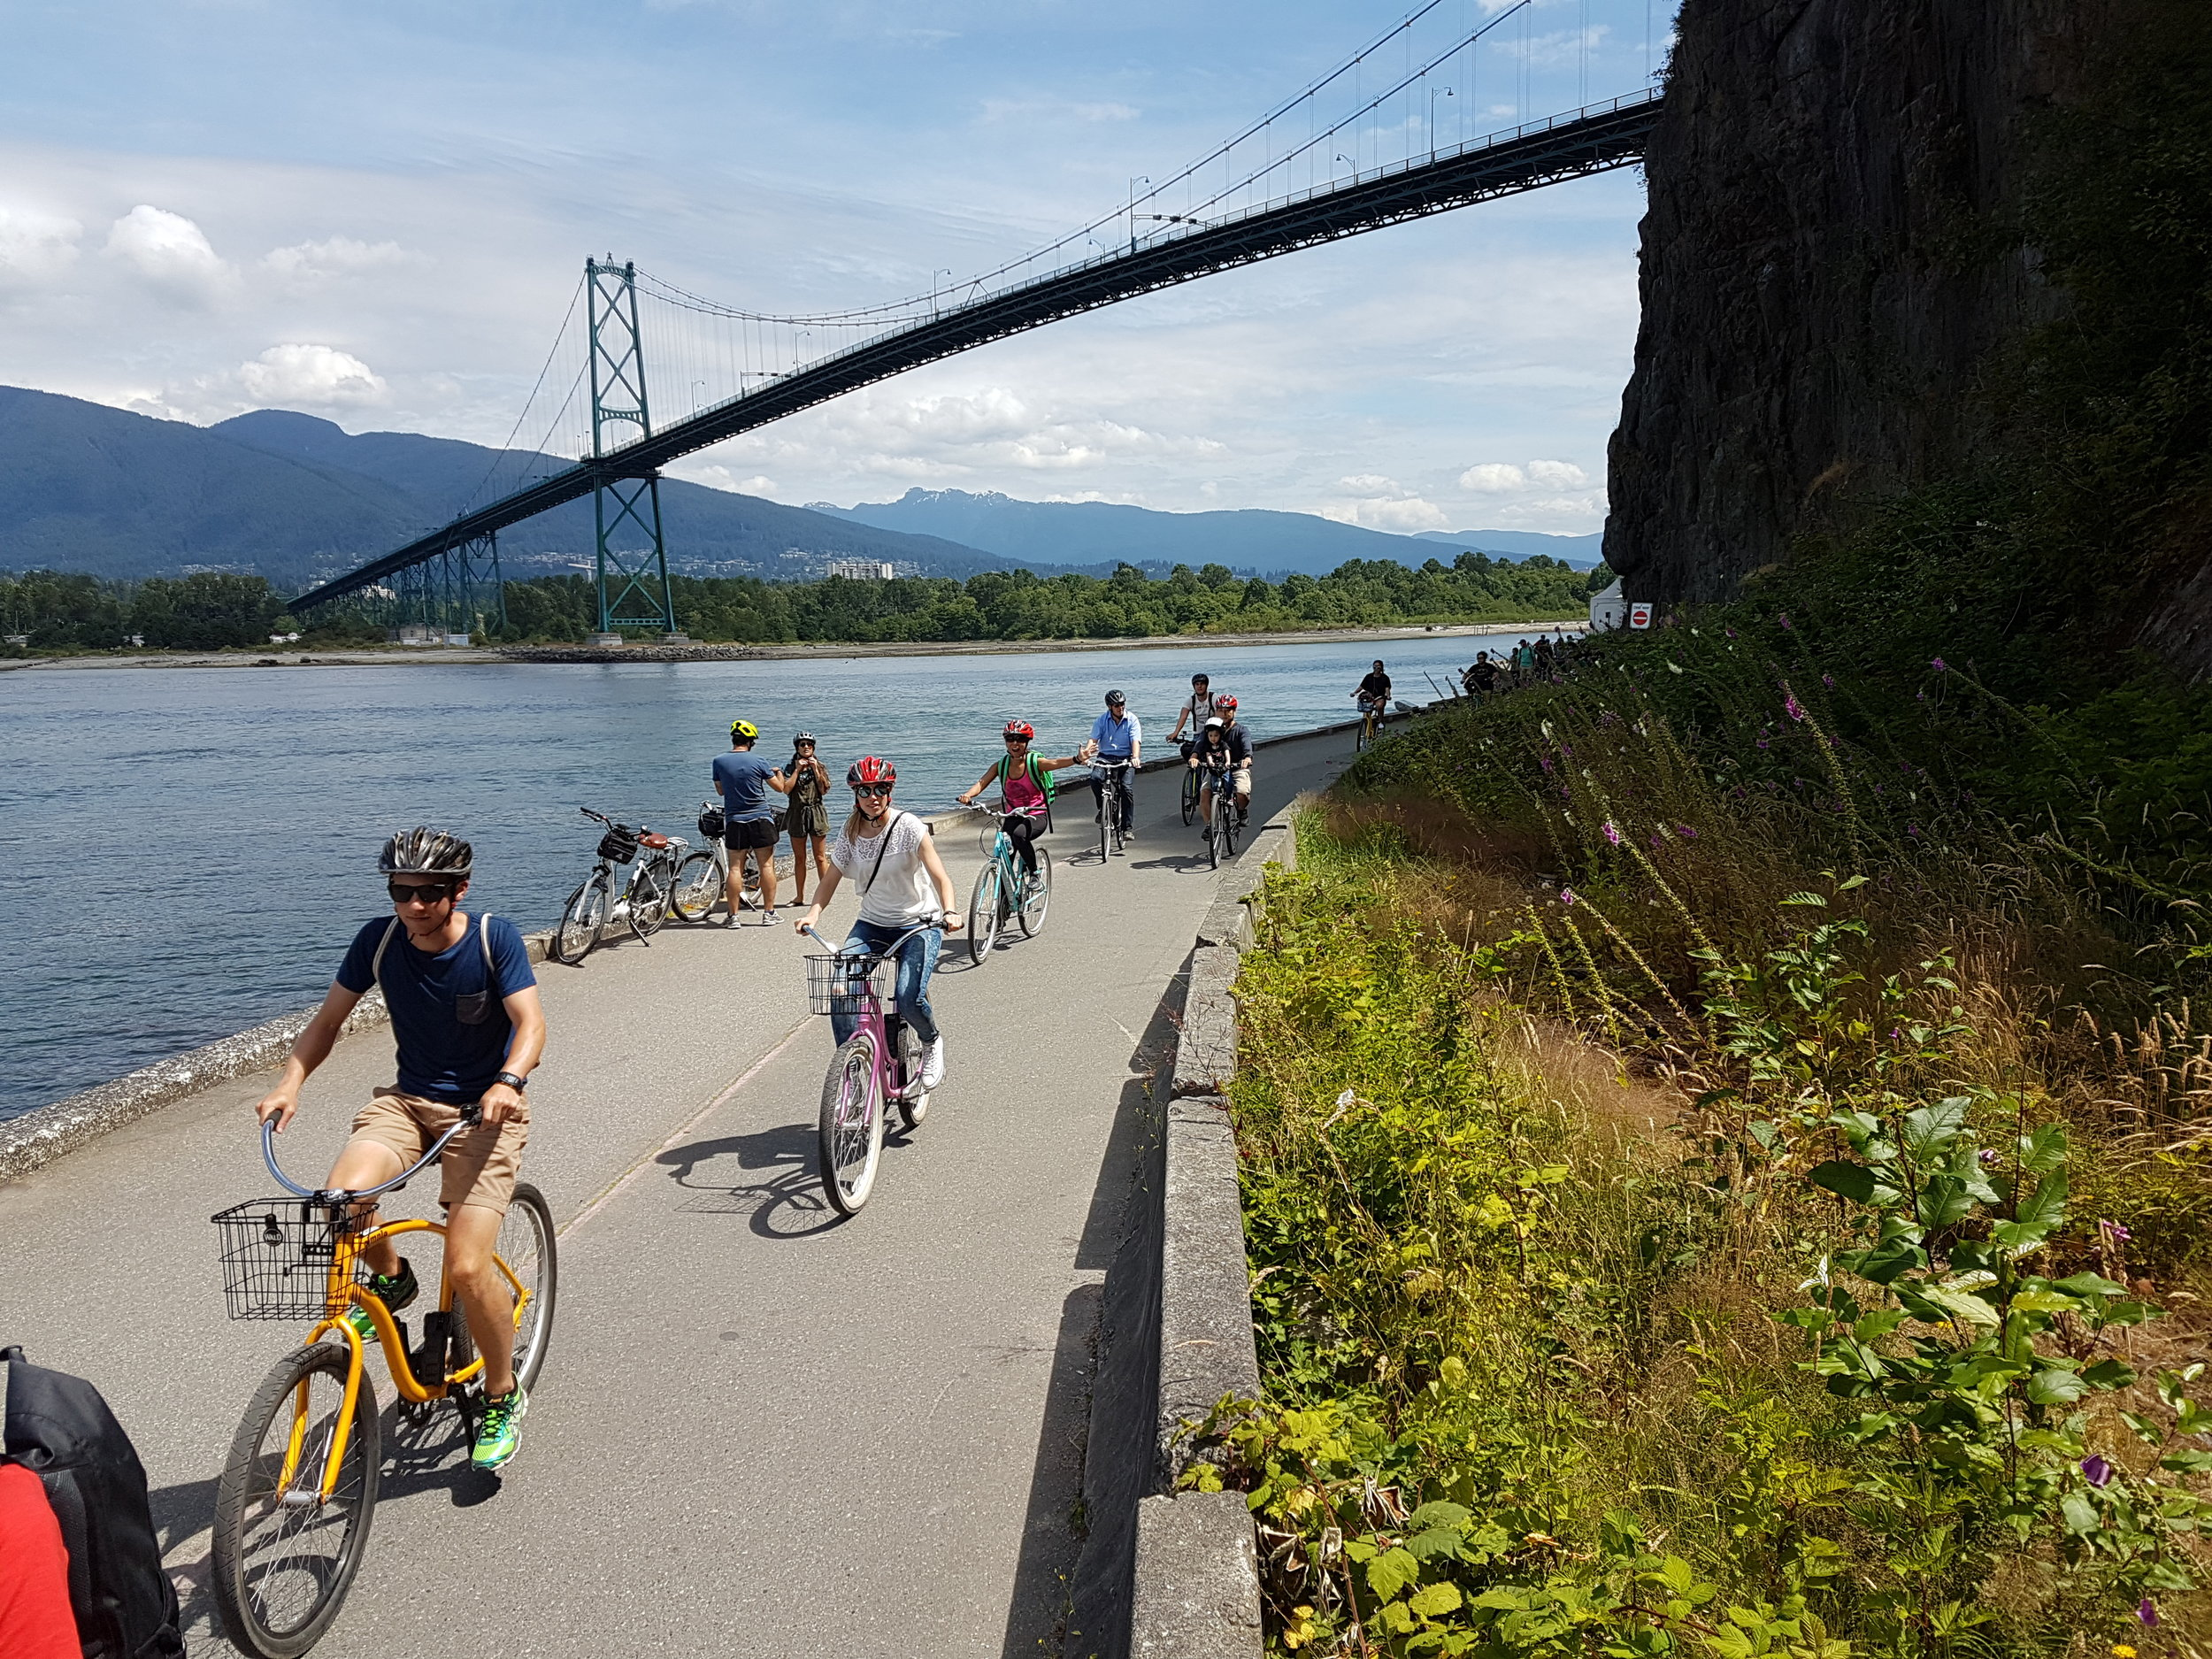 Cycling on the Sea Wall during our Vancouver City tour